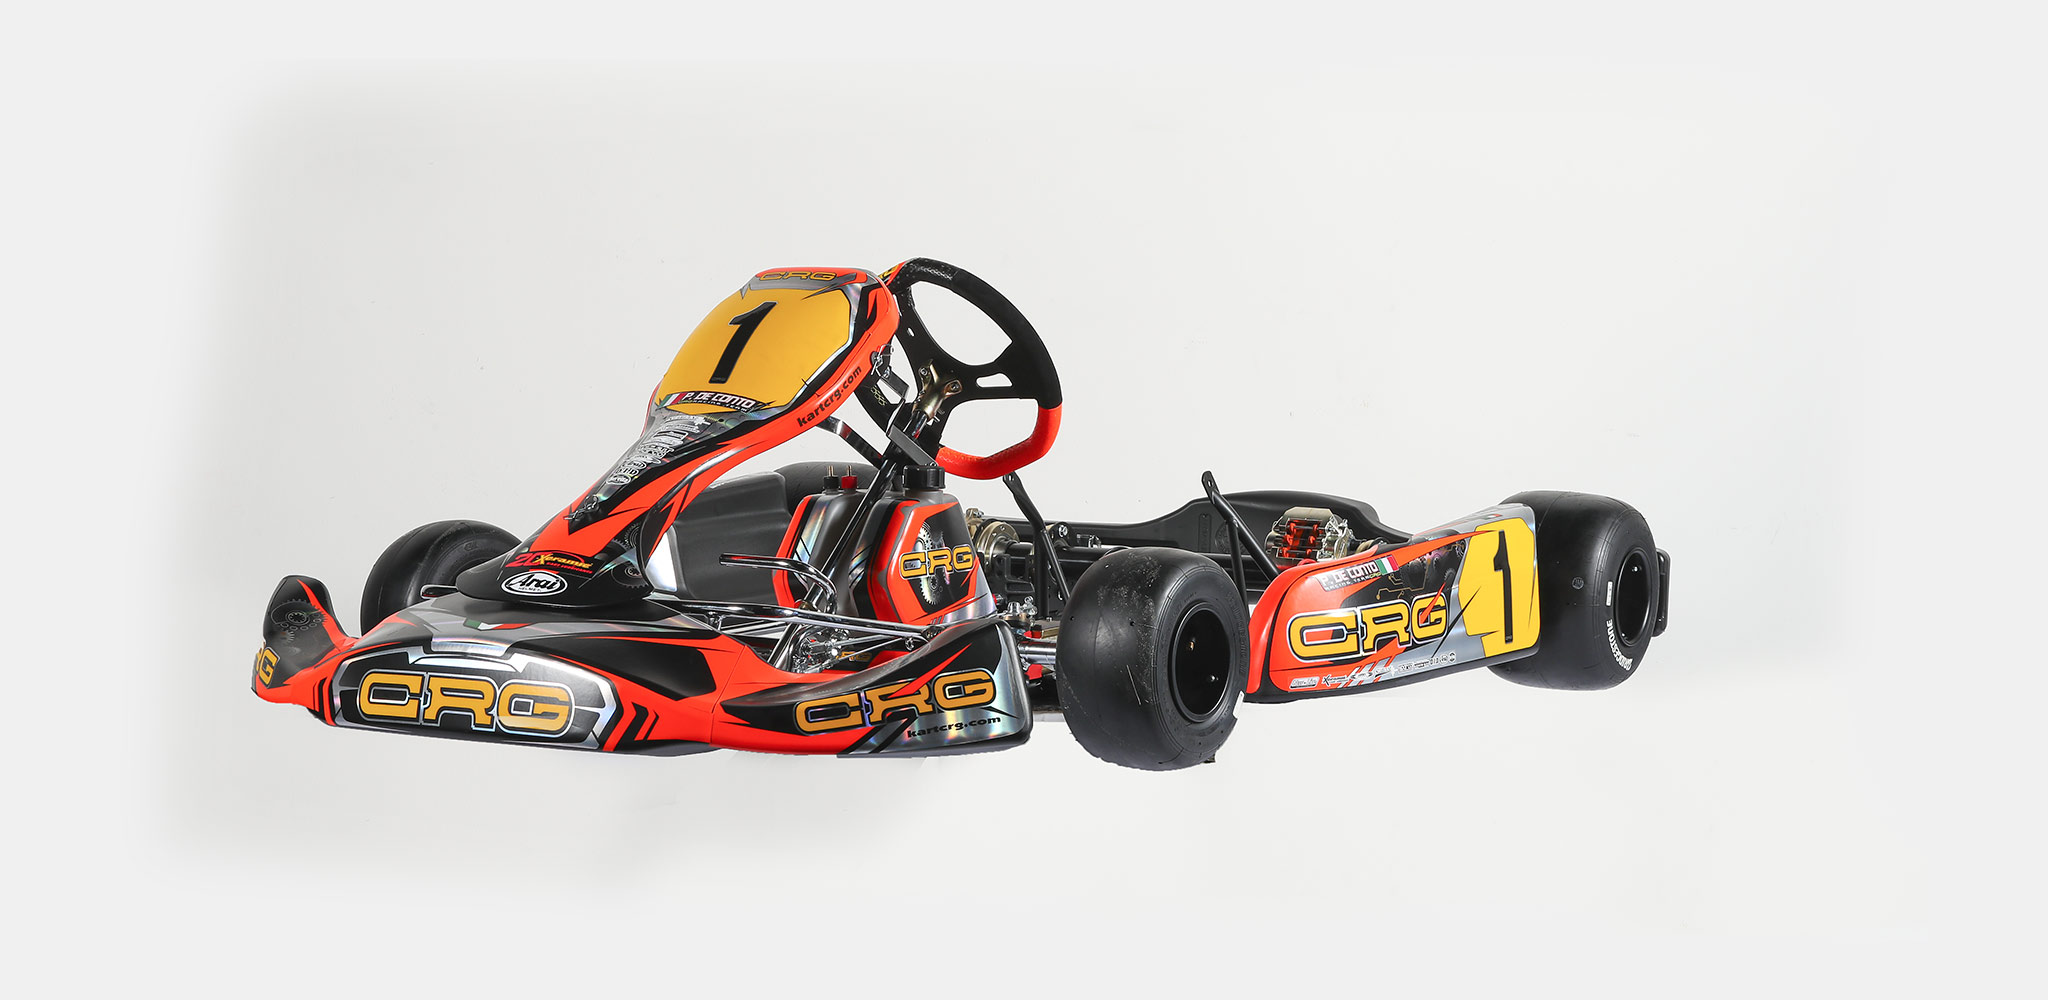 The CRG Heron's return to the market, a kart with an unconventional